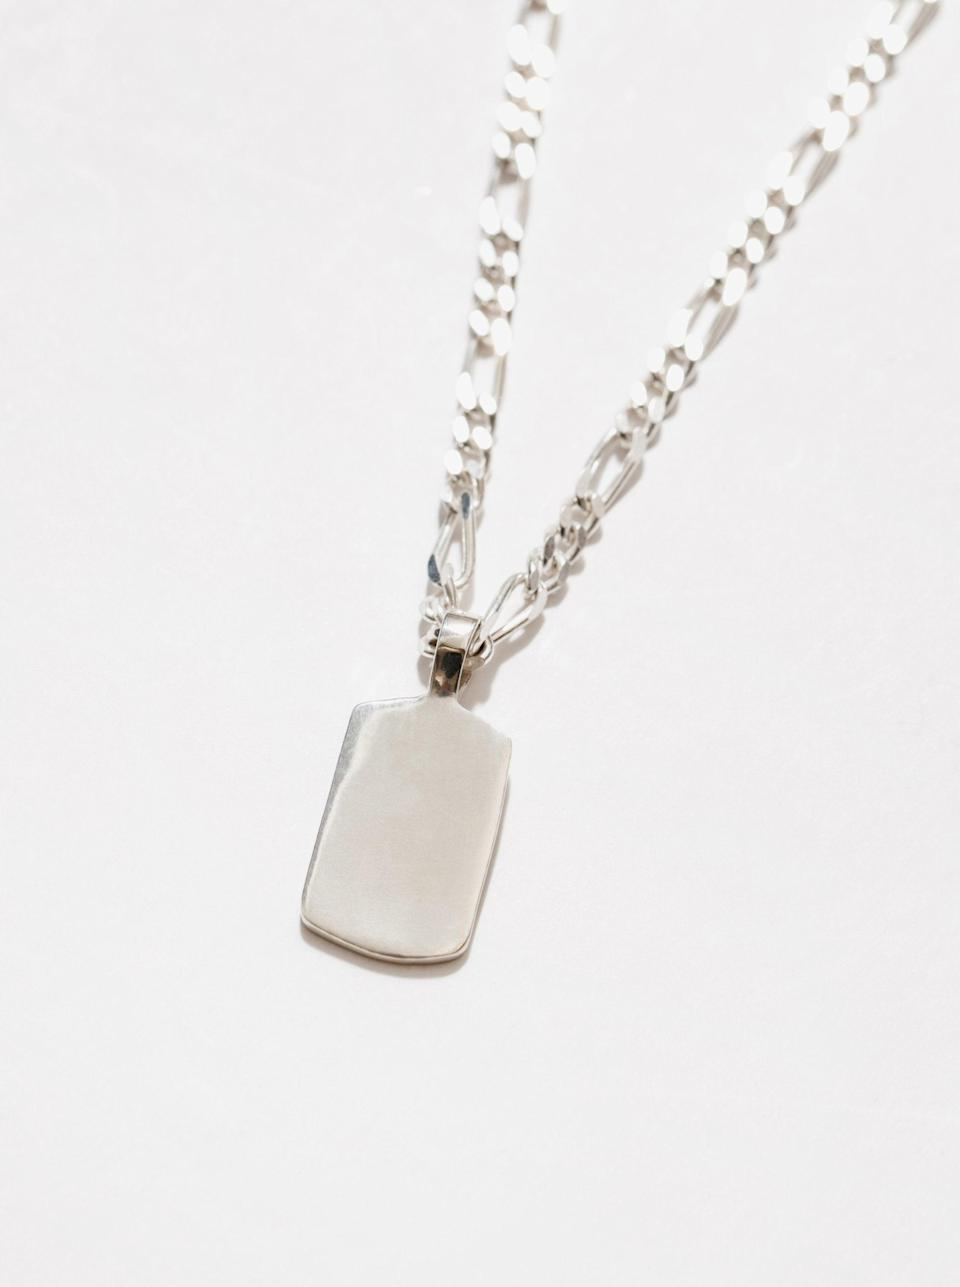 "This sterling silver necklace from Wolf Circus is from the Canadian jewelry brand's new <a href=""https://www.wolfcircus.com/collections/everybody"" rel=""nofollow noopener"" target=""_blank"" data-ylk=""slk:Everybody"" class=""link rapid-noclick-resp"">Everybody</a> collection, which is exactly what it sounds like it is: a jewelry collection for everybody — they'll love it. <br><br>(The price shown here is in USD, while the website presents price in CAD.) <br><br><strong>Wolf Circus</strong> Indy Necklace in Sterling Silver, $, available at <a href=""https://go.skimresources.com/?id=30283X879131&url=https%3A%2F%2Fwww.wolfcircus.com%2Fcollections%2Feverybody%2Fproducts%2Findy-necklace-in-sterling-silver"" rel=""nofollow noopener"" target=""_blank"" data-ylk=""slk:Wolf Circus"" class=""link rapid-noclick-resp"">Wolf Circus</a>"